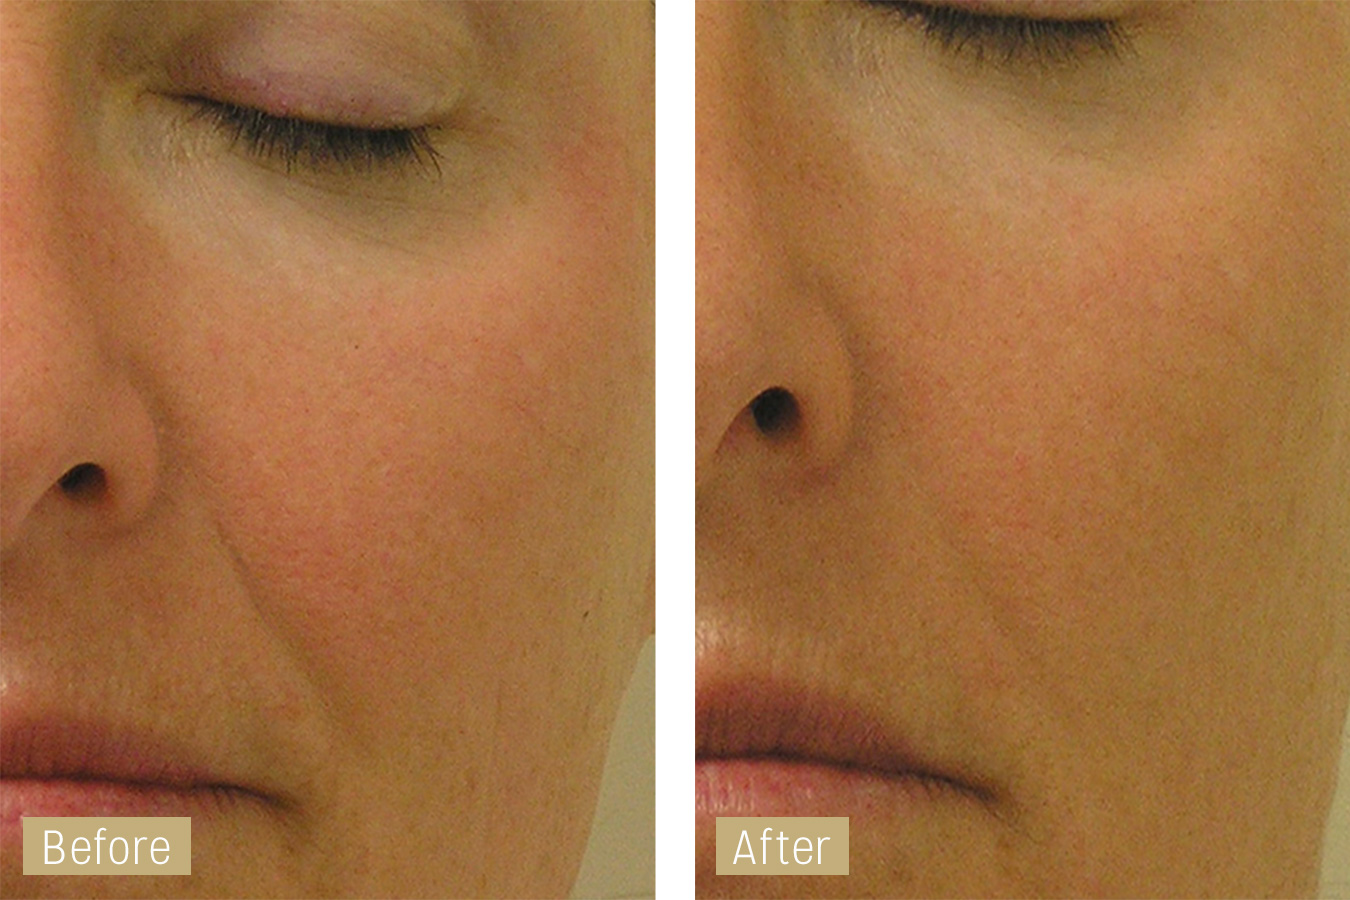 nasal fold treatment - hydrafacial before and after